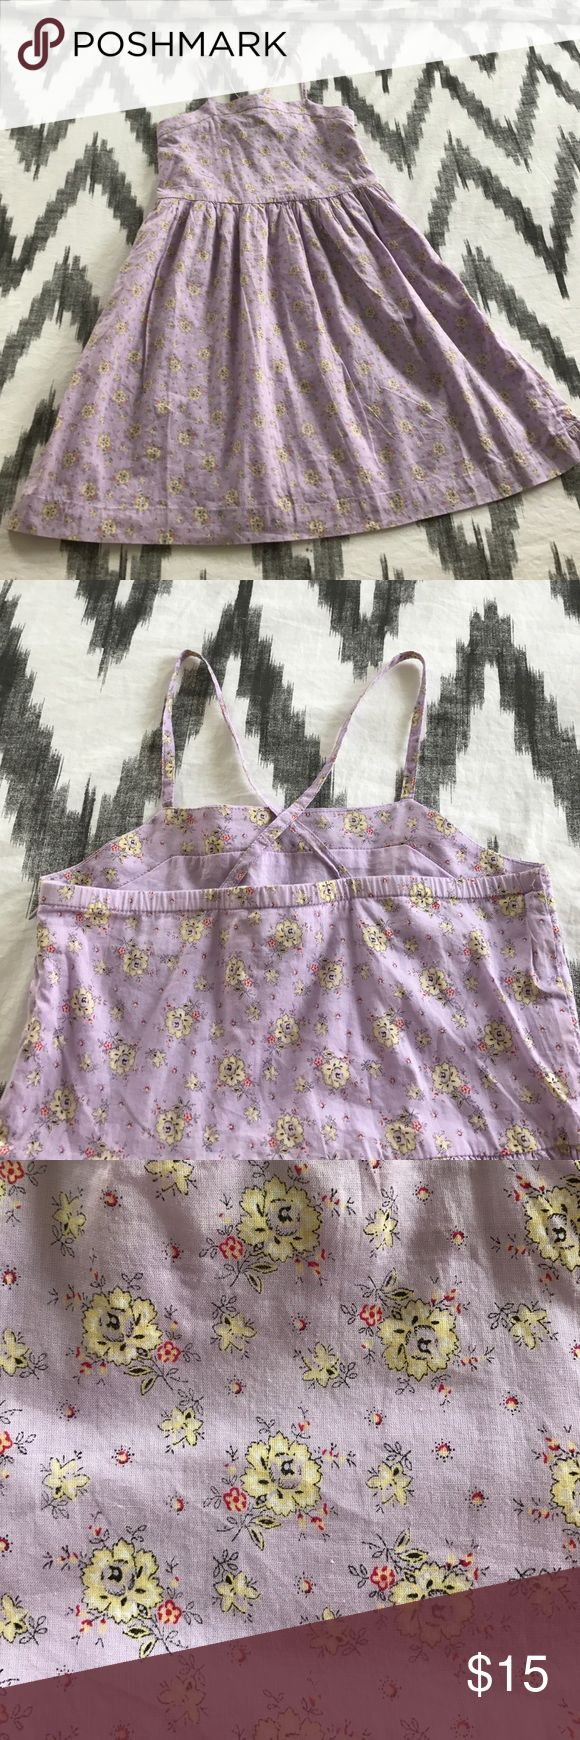 🌸☀️Adorable lavender & floral Gap girls sundress This sweet floral lavender colored spaghetti strapped sundress is in excellent like new condition with no pilling, stains, or rips. GAP Dresses Casual